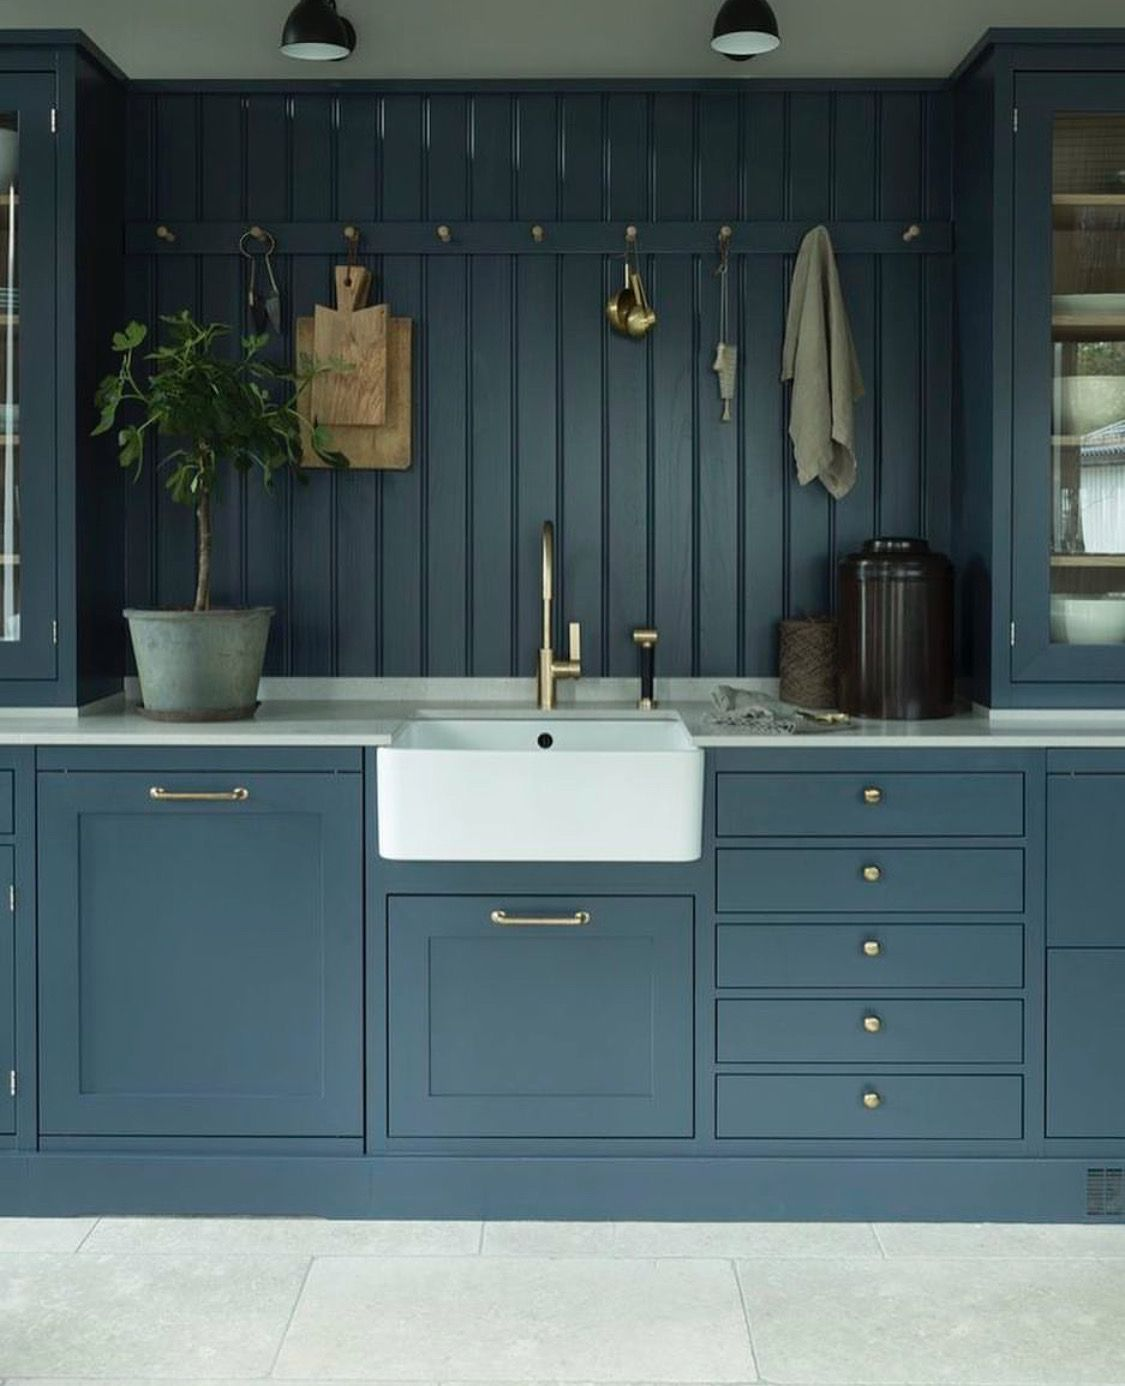 blue grey kitchen cabinetry and a farmhouse sink | Kitchens ...